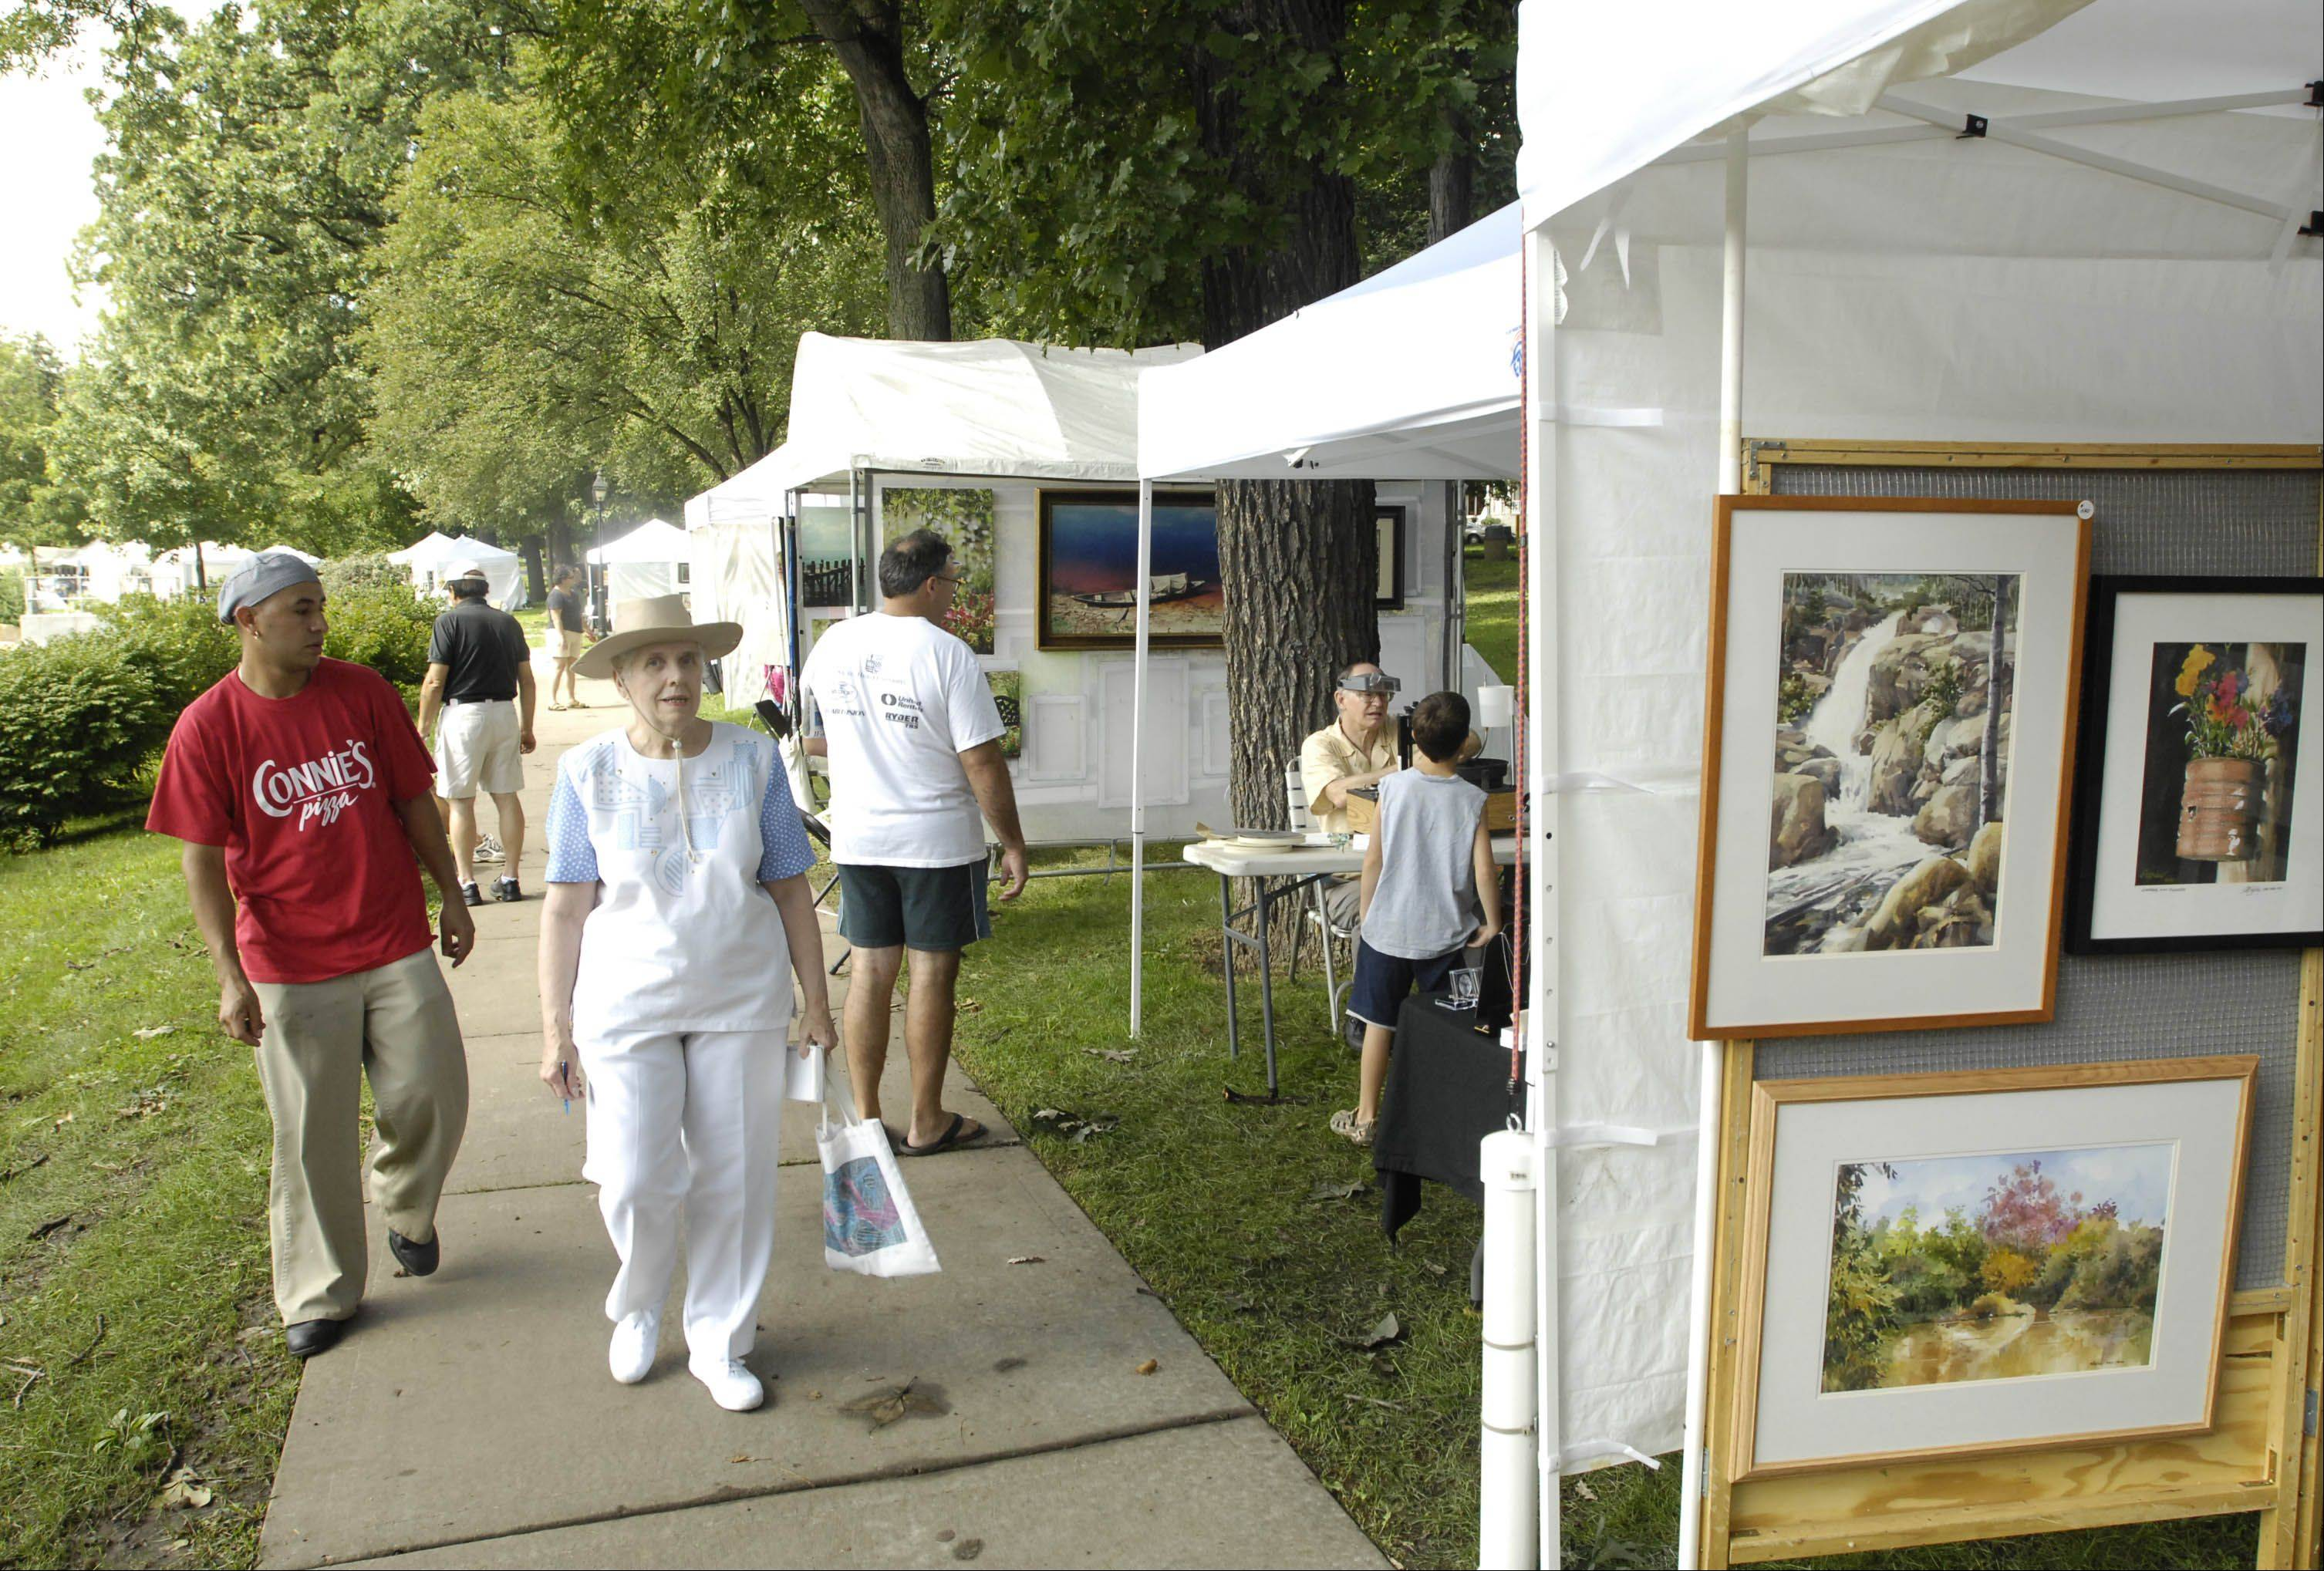 The Glen Ellyn Festival of the Arts will feature artwork from more than 70 juried artists Saturday and Sunday at Lake Ellyn Park.